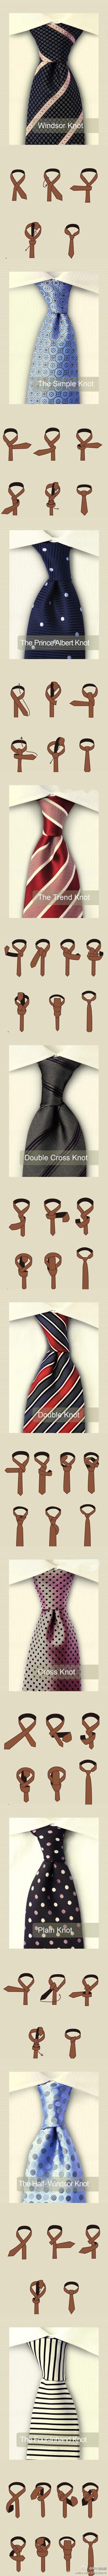 different tie knots